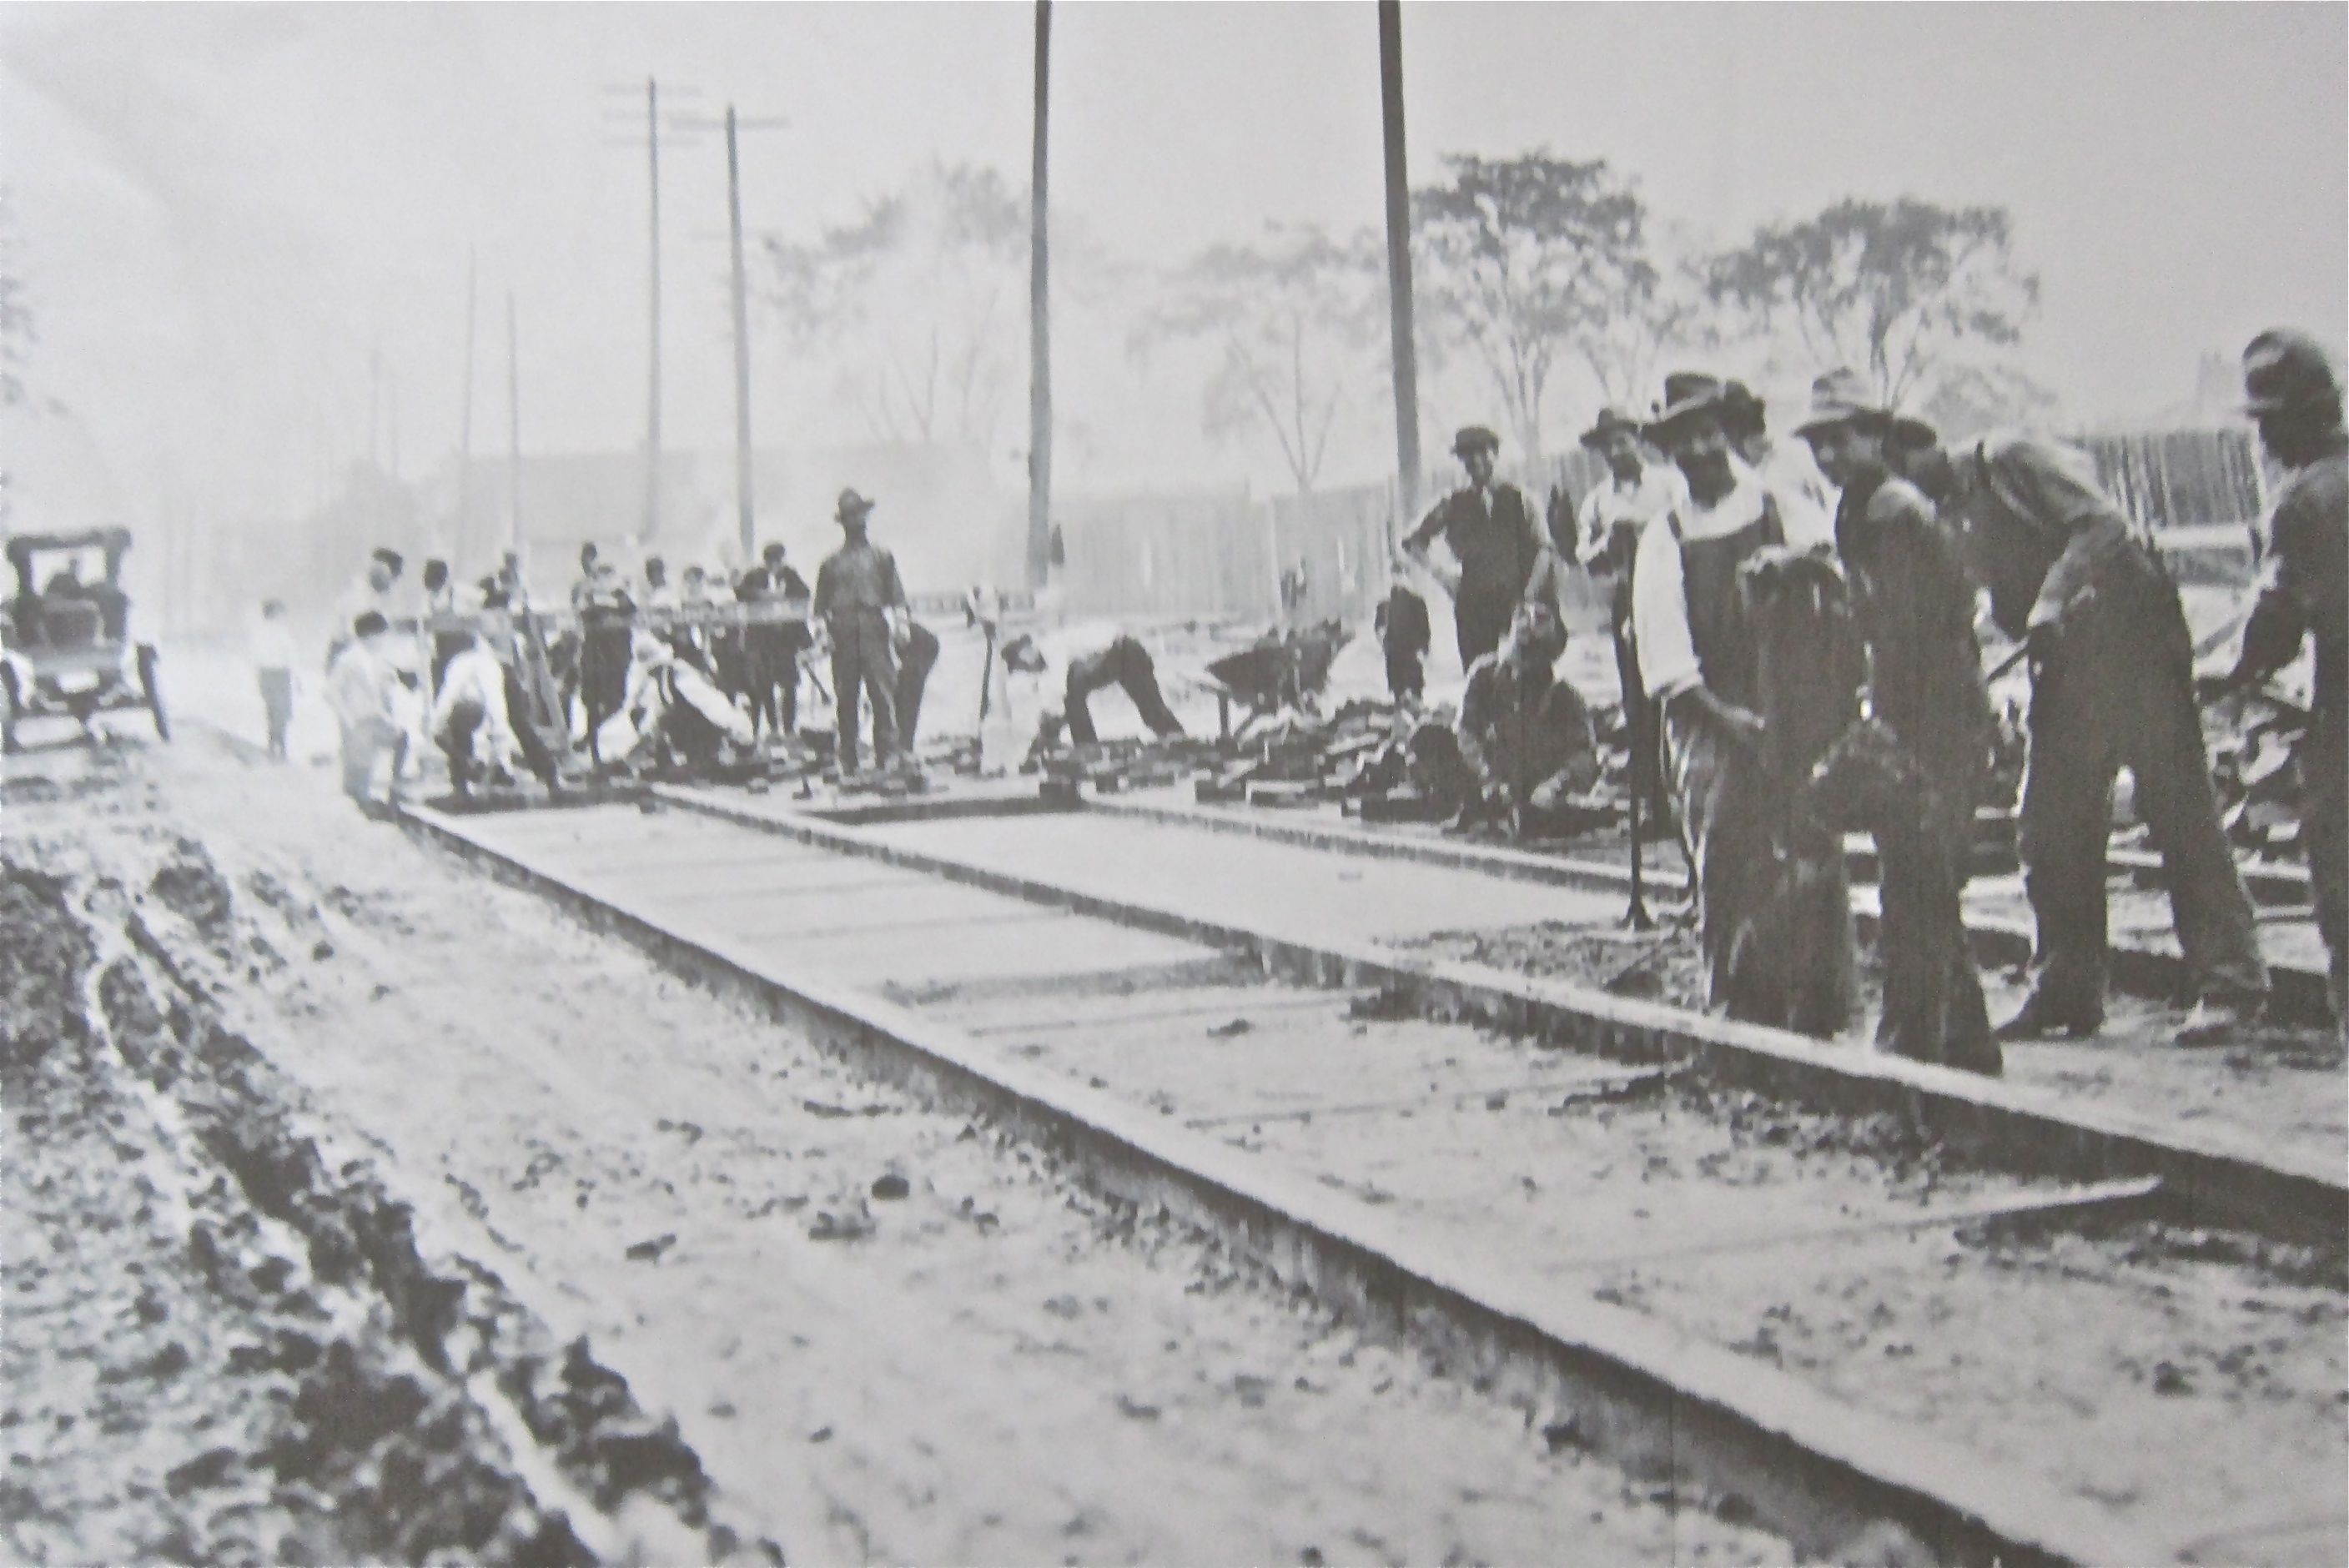 Thirty years after the last spike was driven on the transcontinental CPR line, work proceeded nicely on bringing rails to what had been Upper Midway until the 1909 annexation.